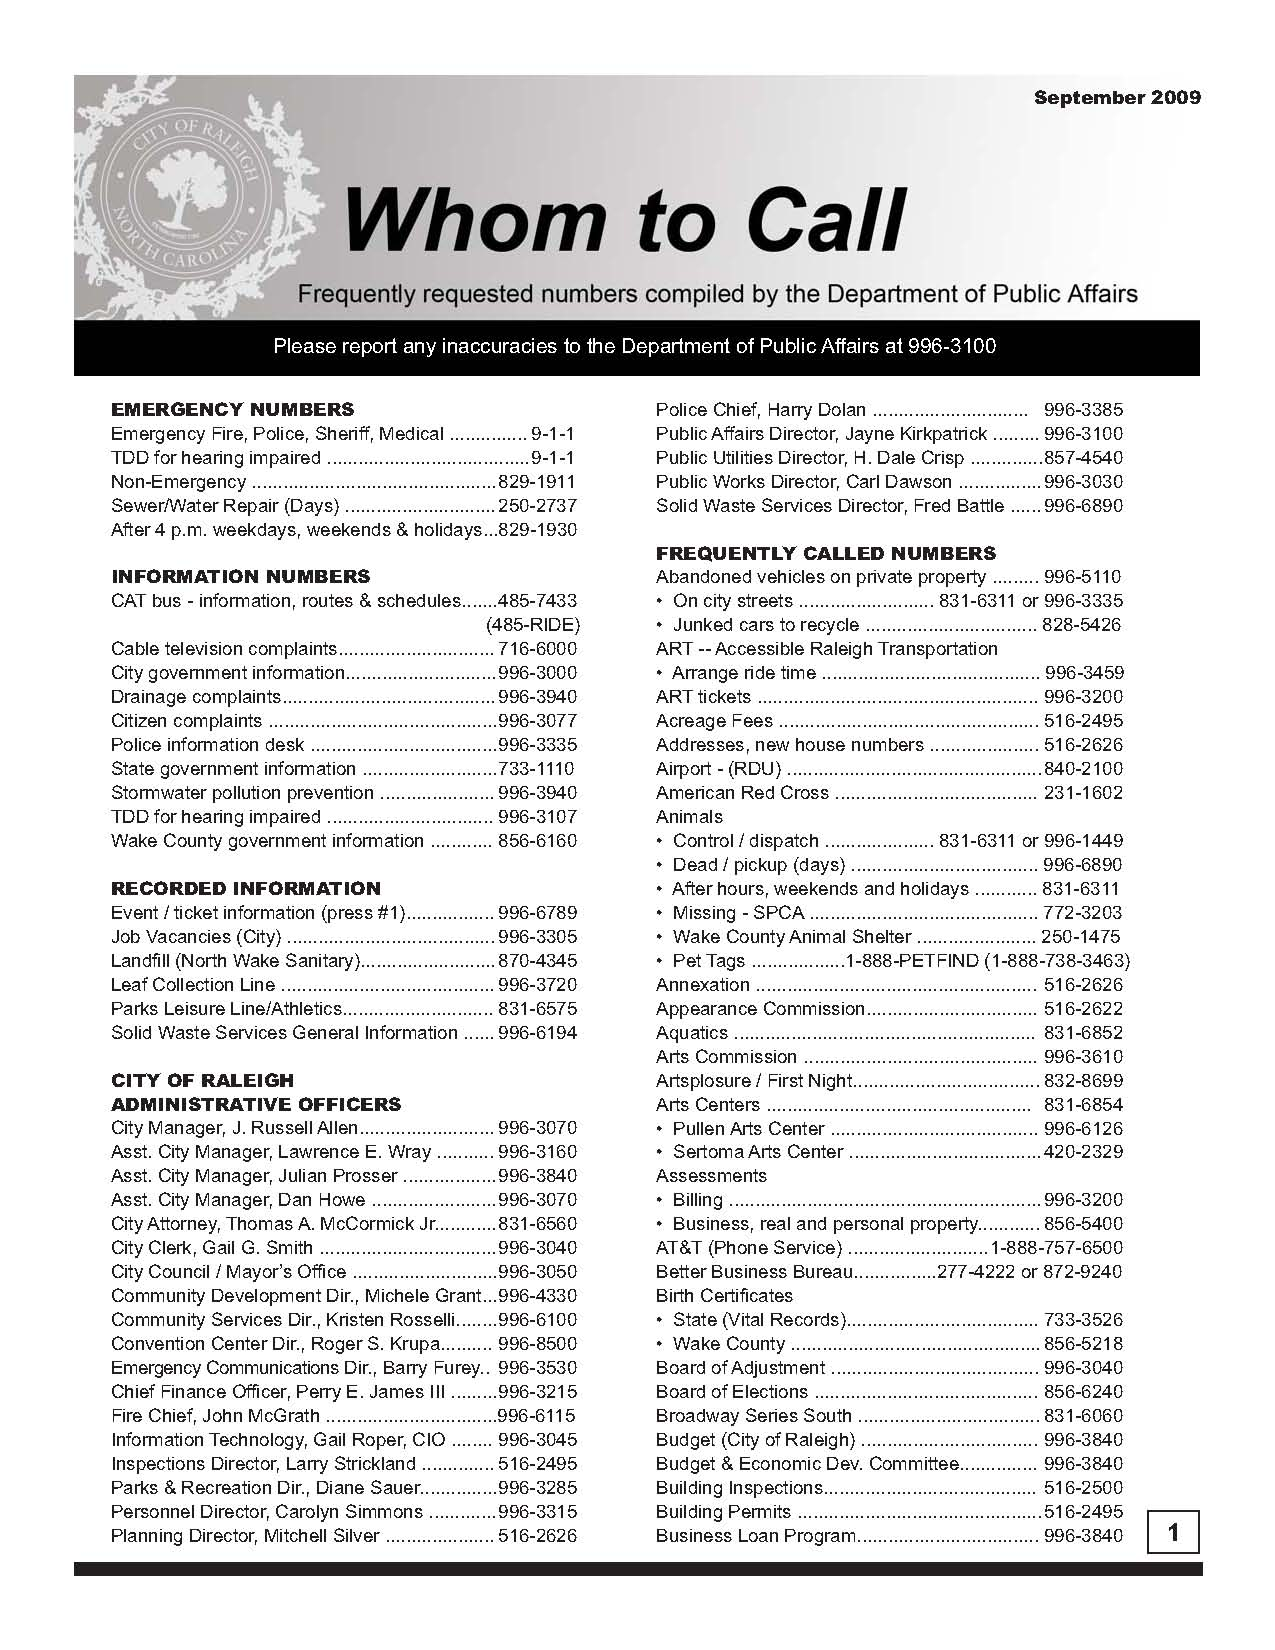 Whom-to-Call-September-2009 - page 1